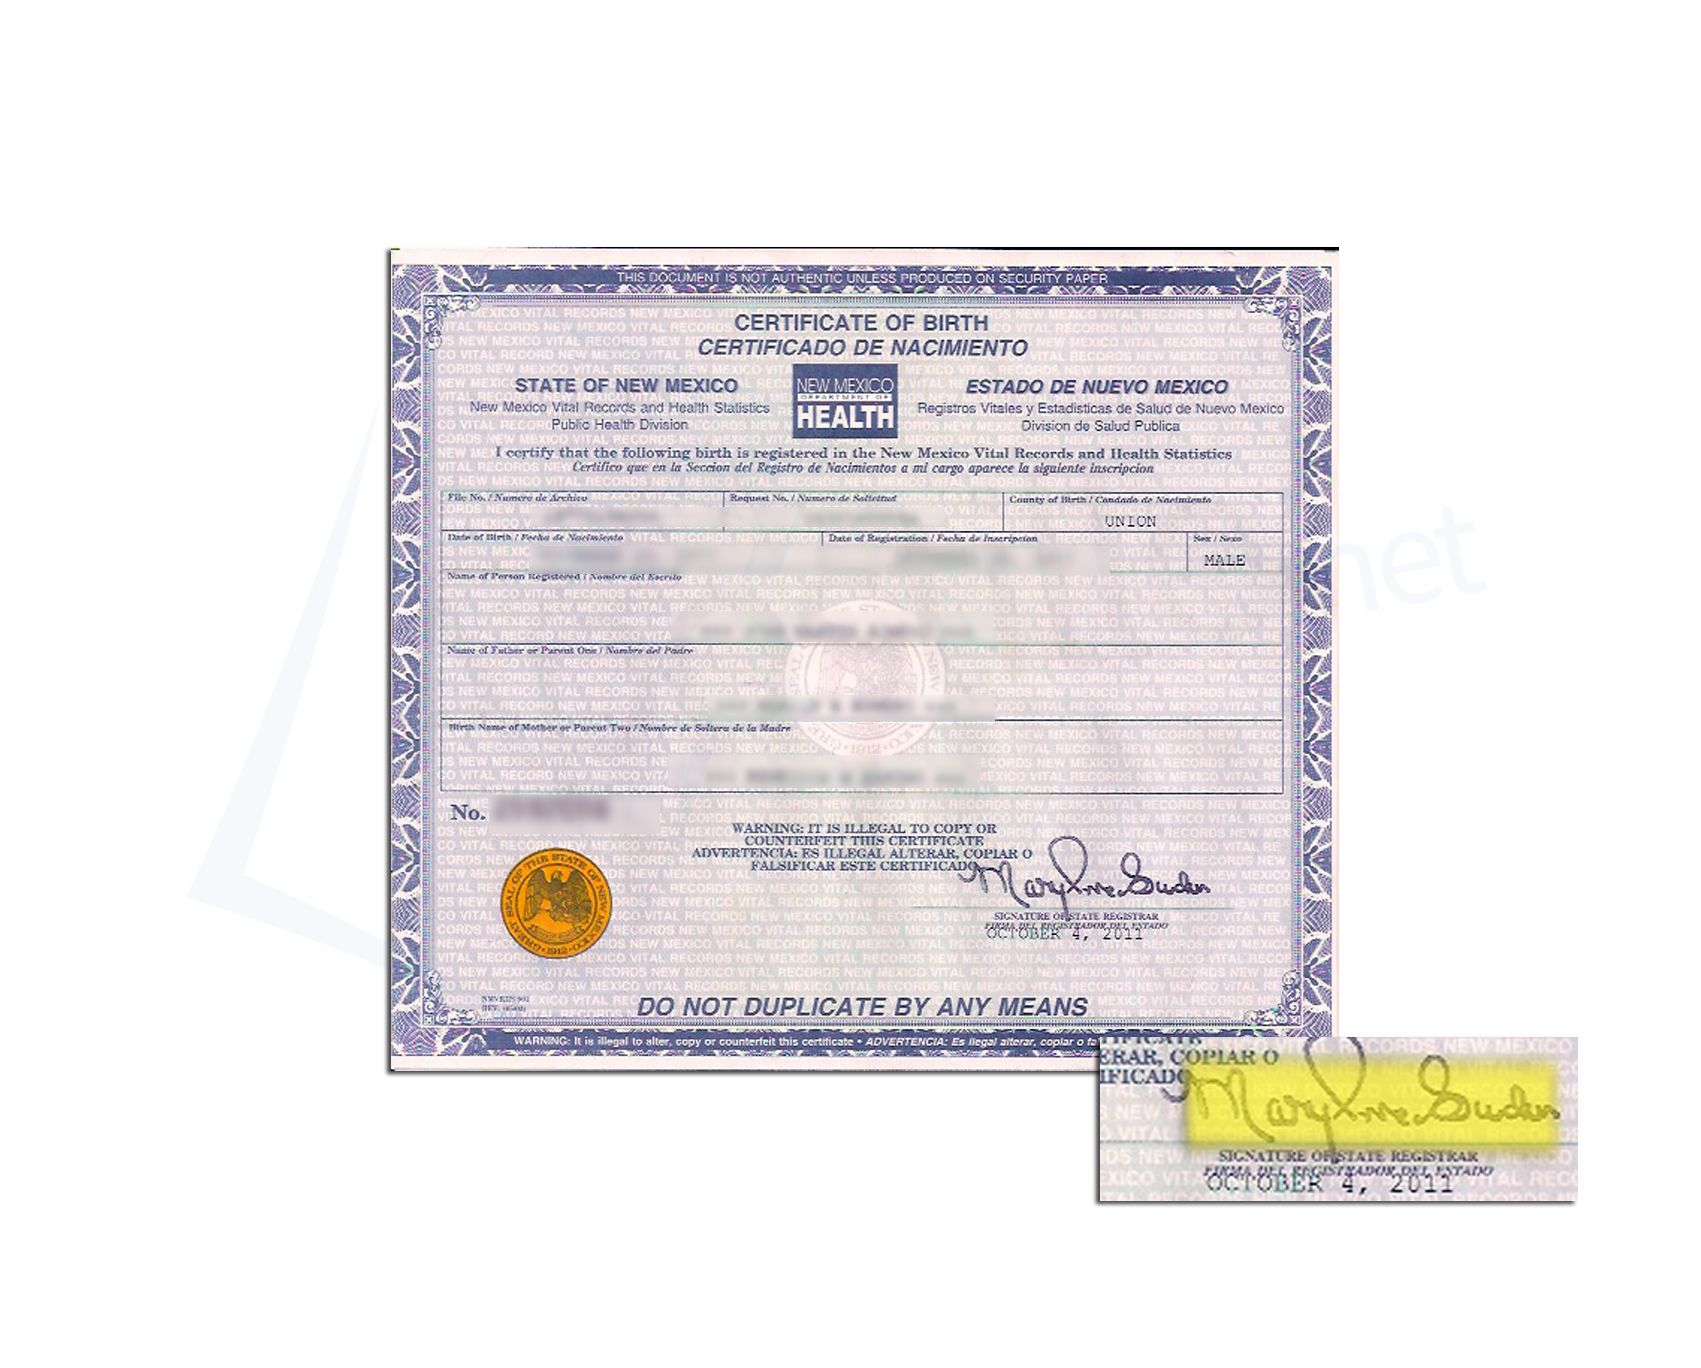 County Of Union Of New Mexico Birth Certificate Issued By The State